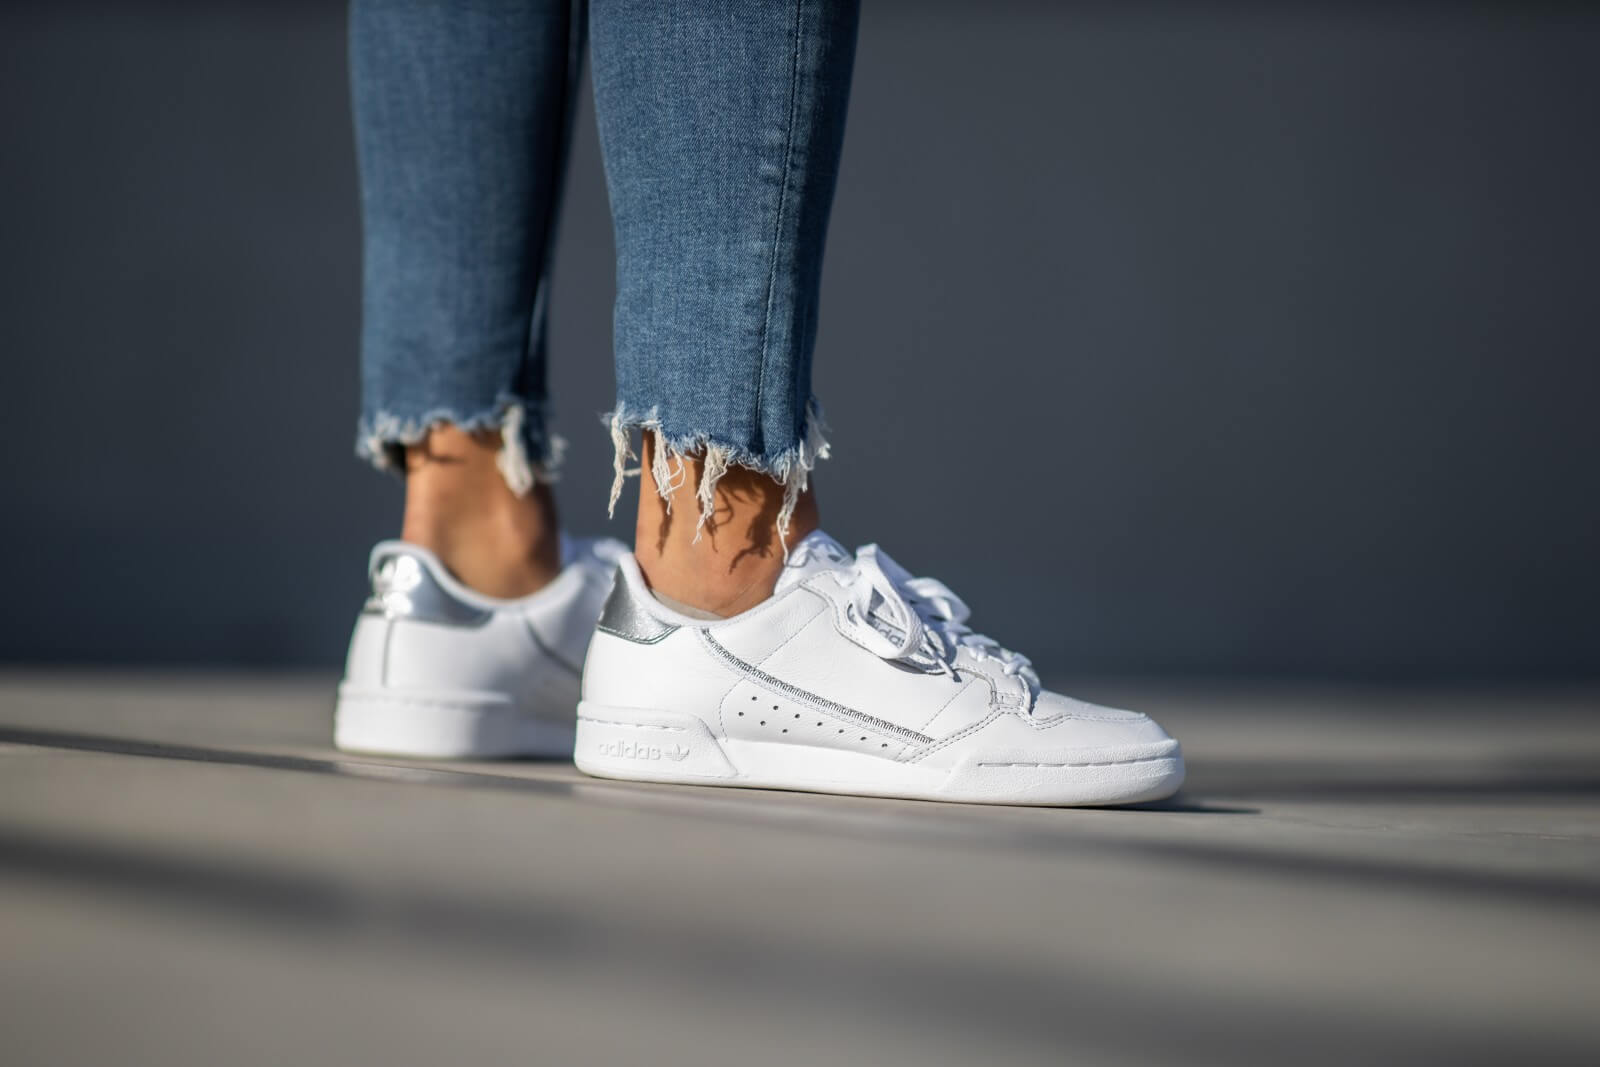 adidas Continental 80 Sneaker | Adidas shoes women, Sneakers